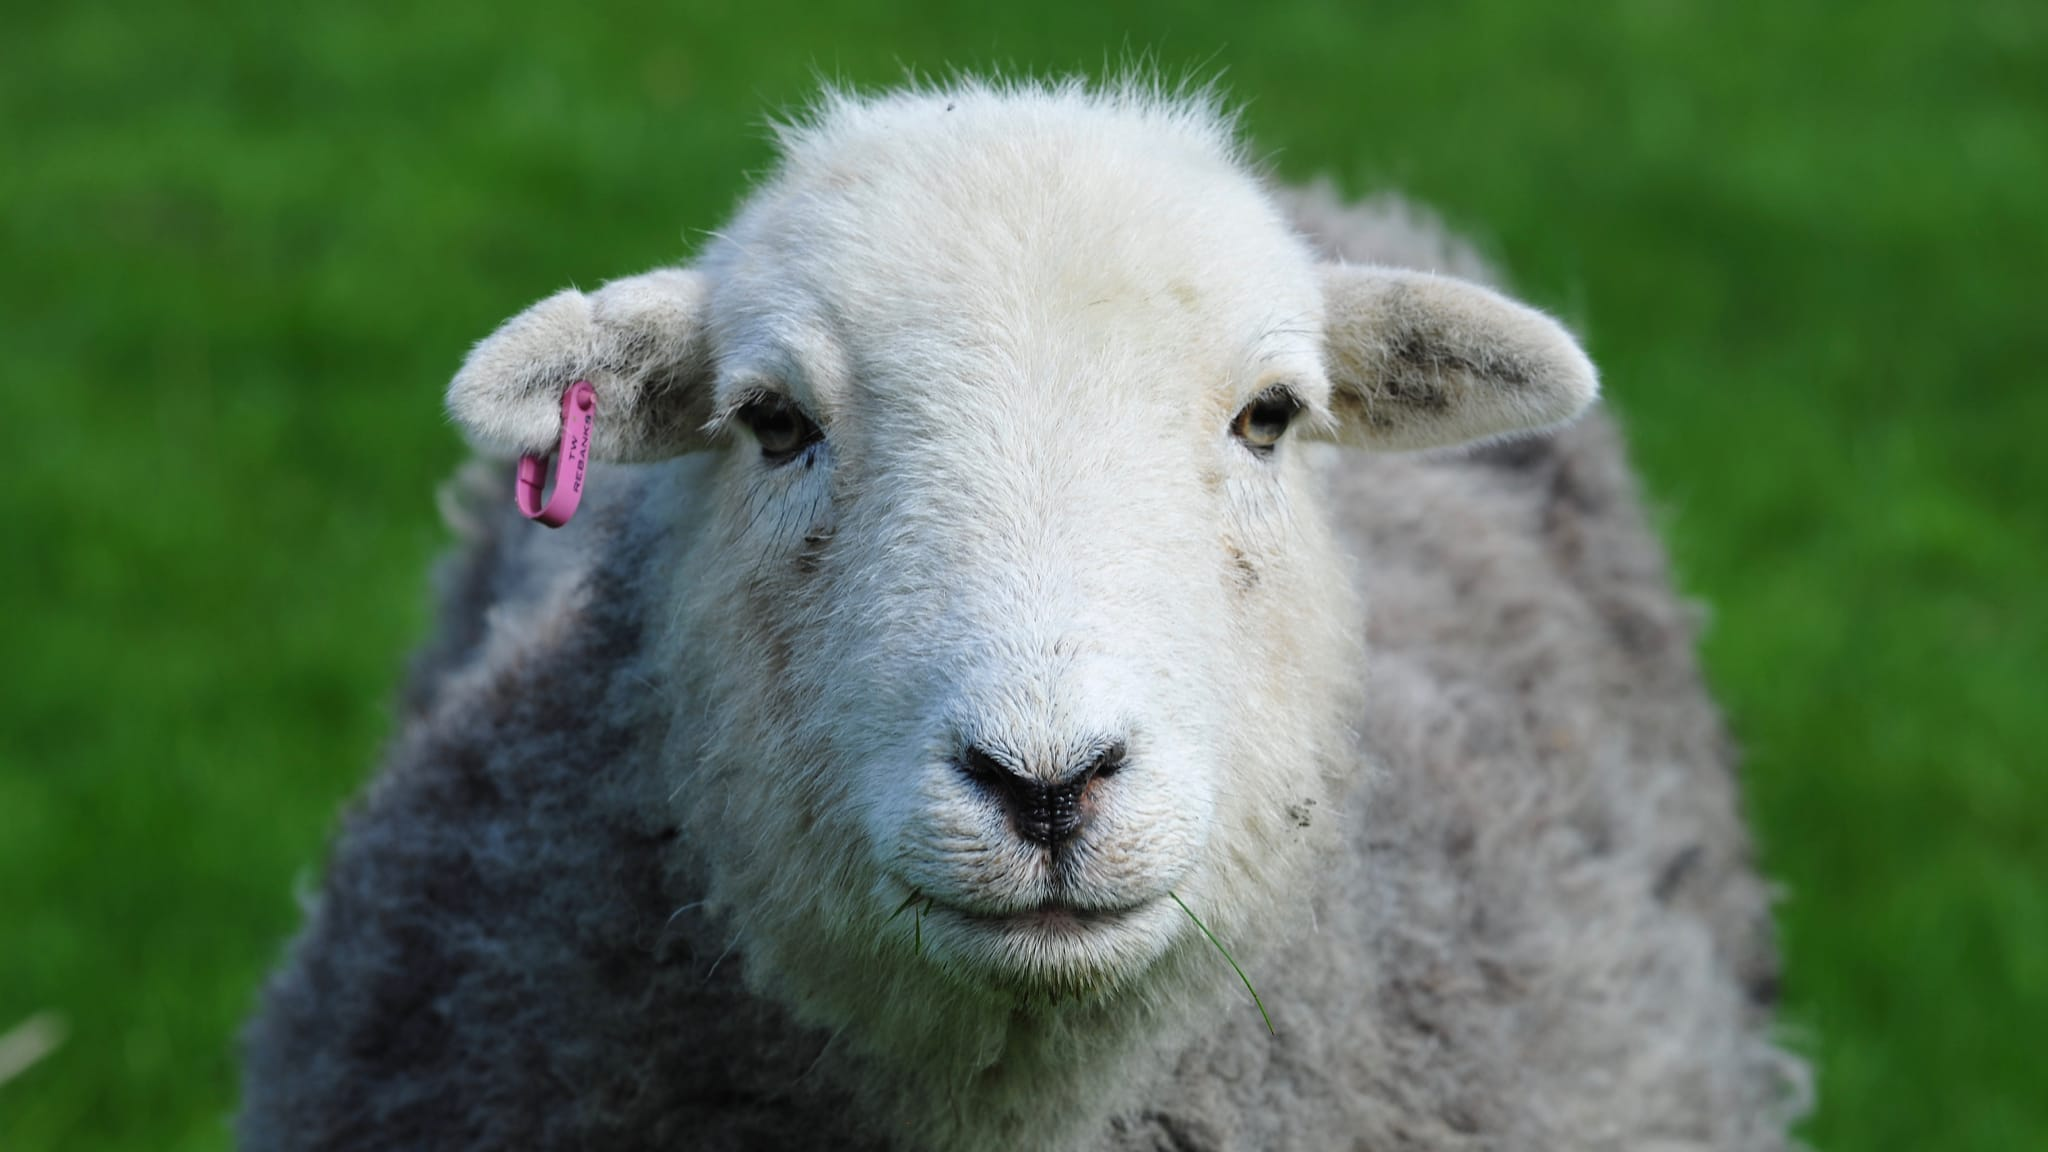 A close-up face-on photo of a Herdwick sheep ewe and its smiling face